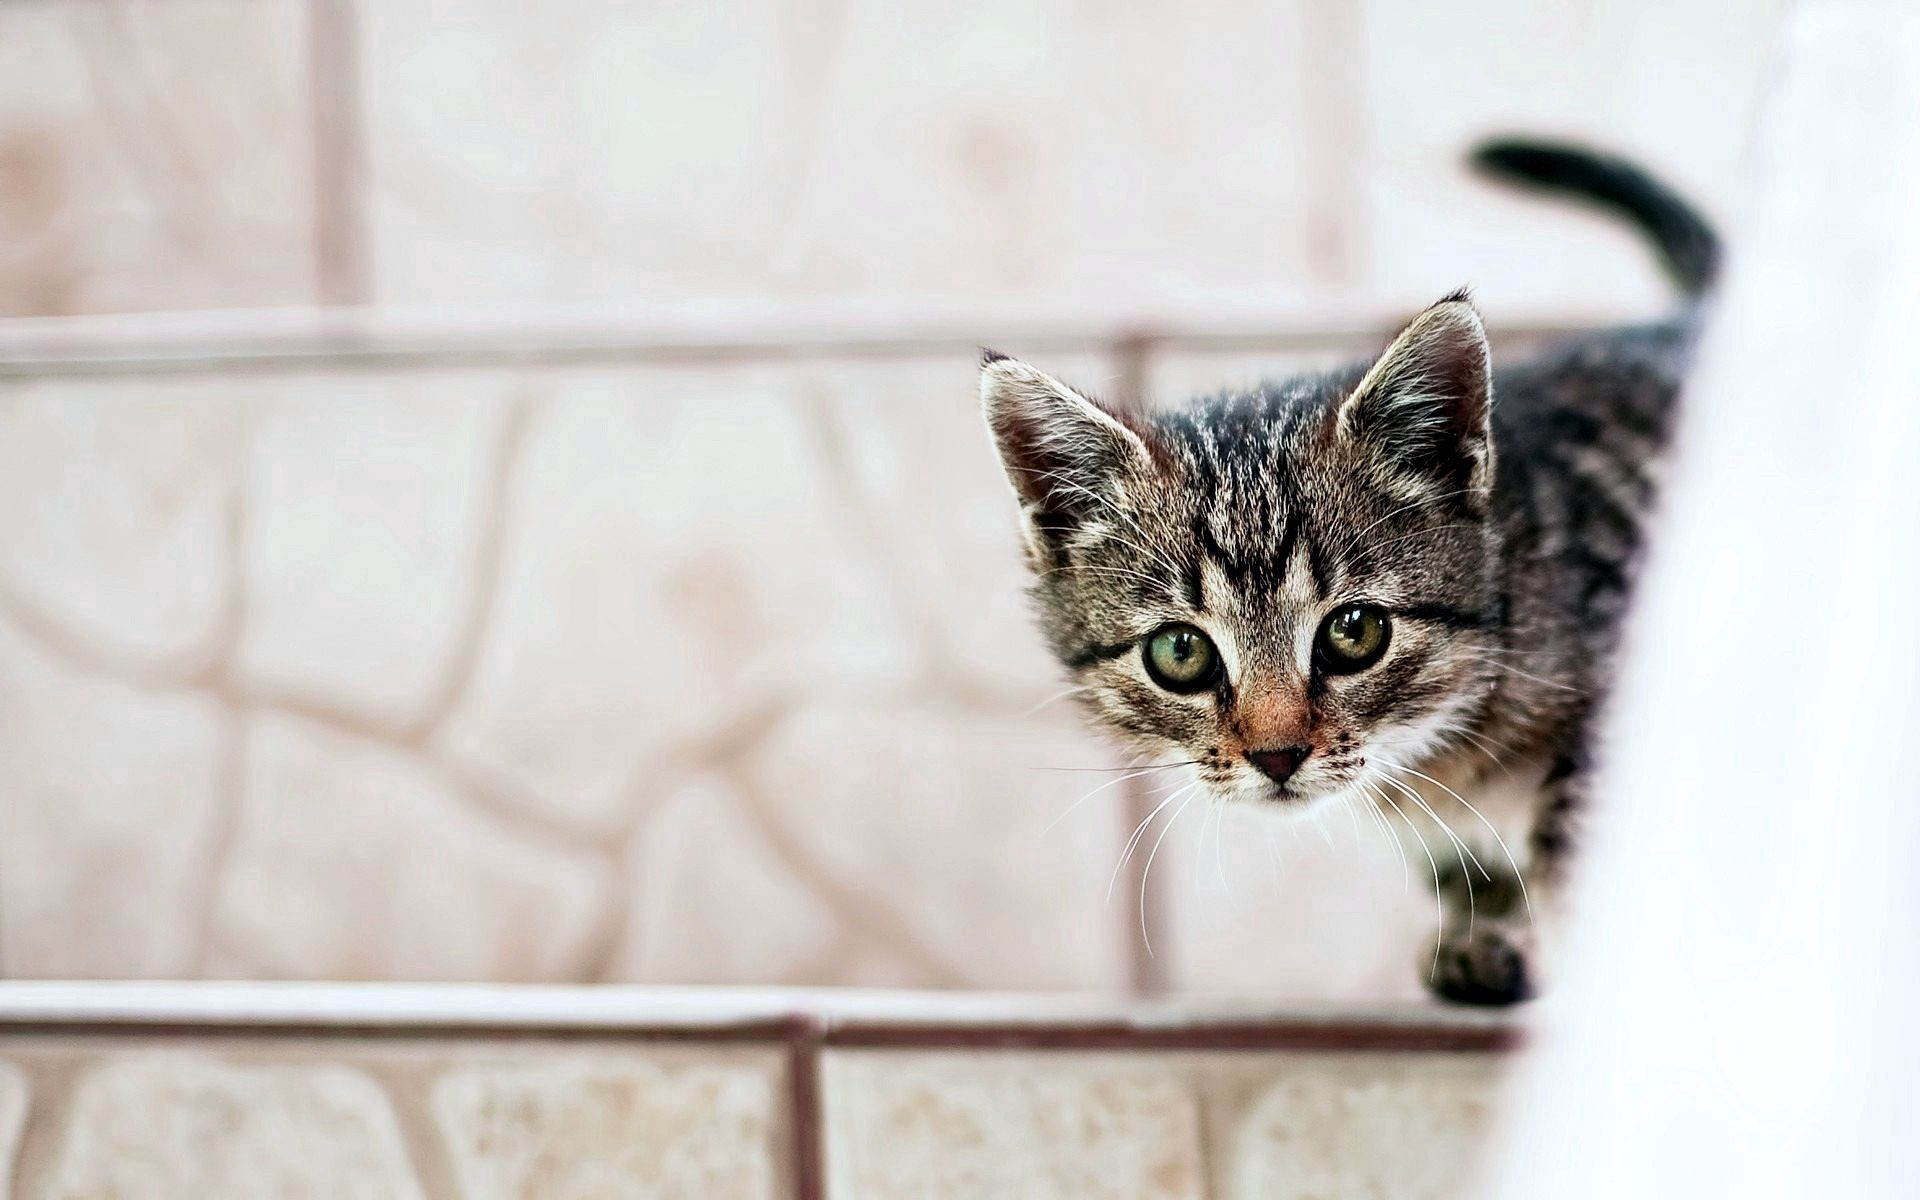 135570 download wallpaper Animals, Kitty, Kitten, Muzzle, Peek Out, Look Out screensavers and pictures for free